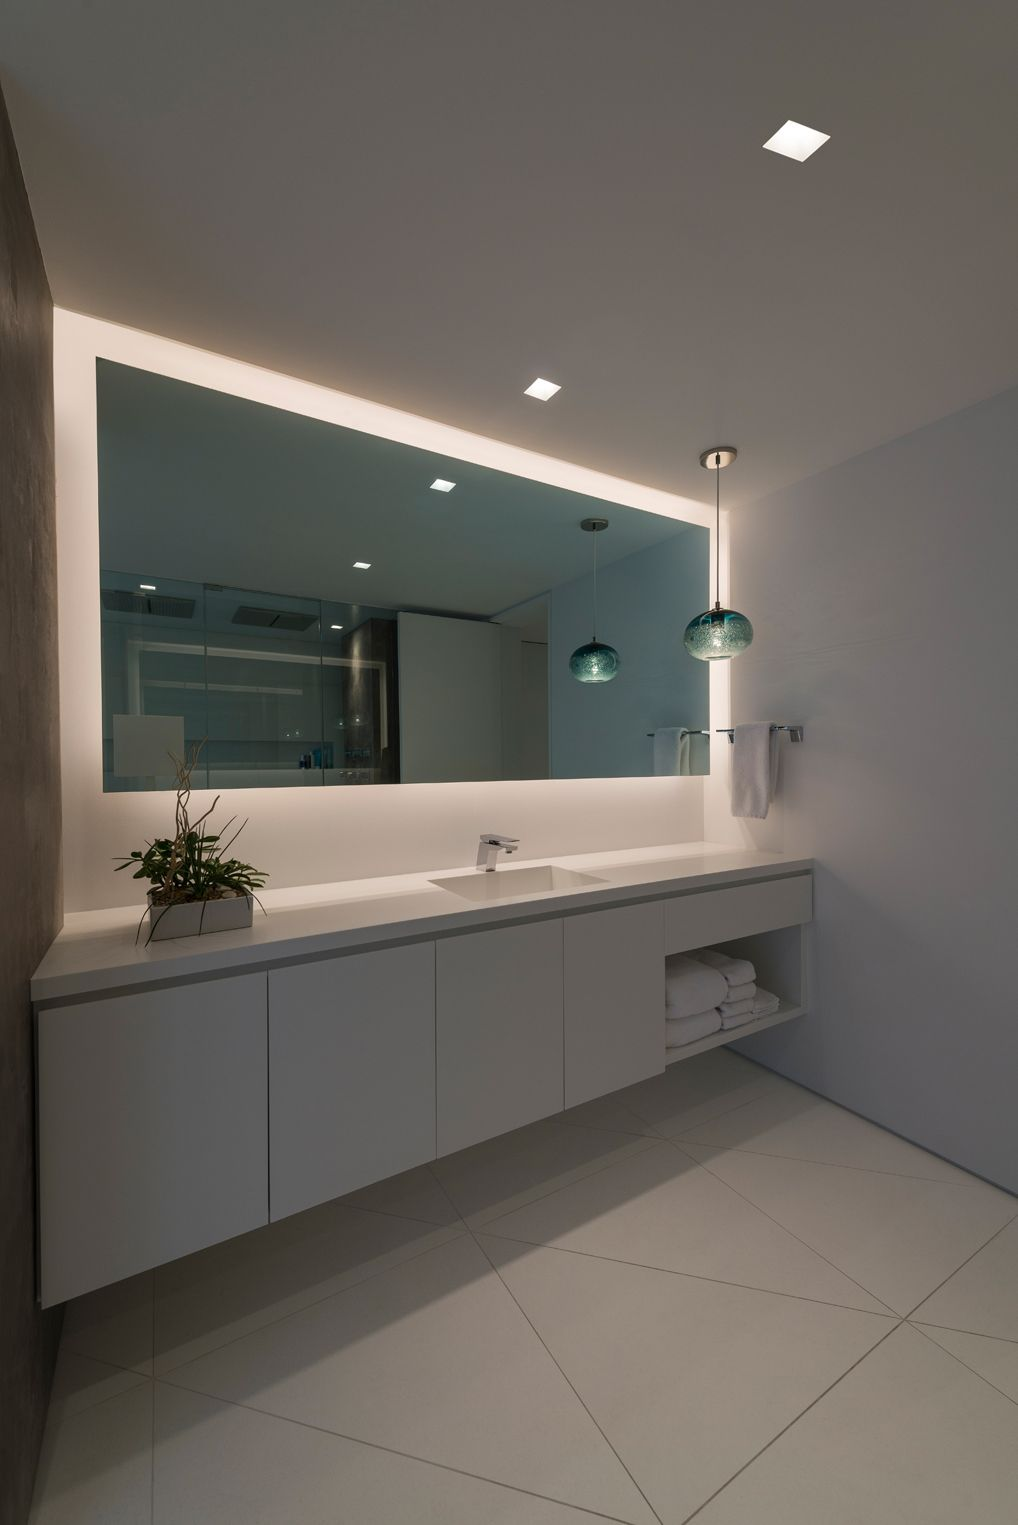 Big Vanity Mirror With Lights New Tips To Choose A Bathroom Mirror  Pinterest  Modern Architecture Design Inspiration